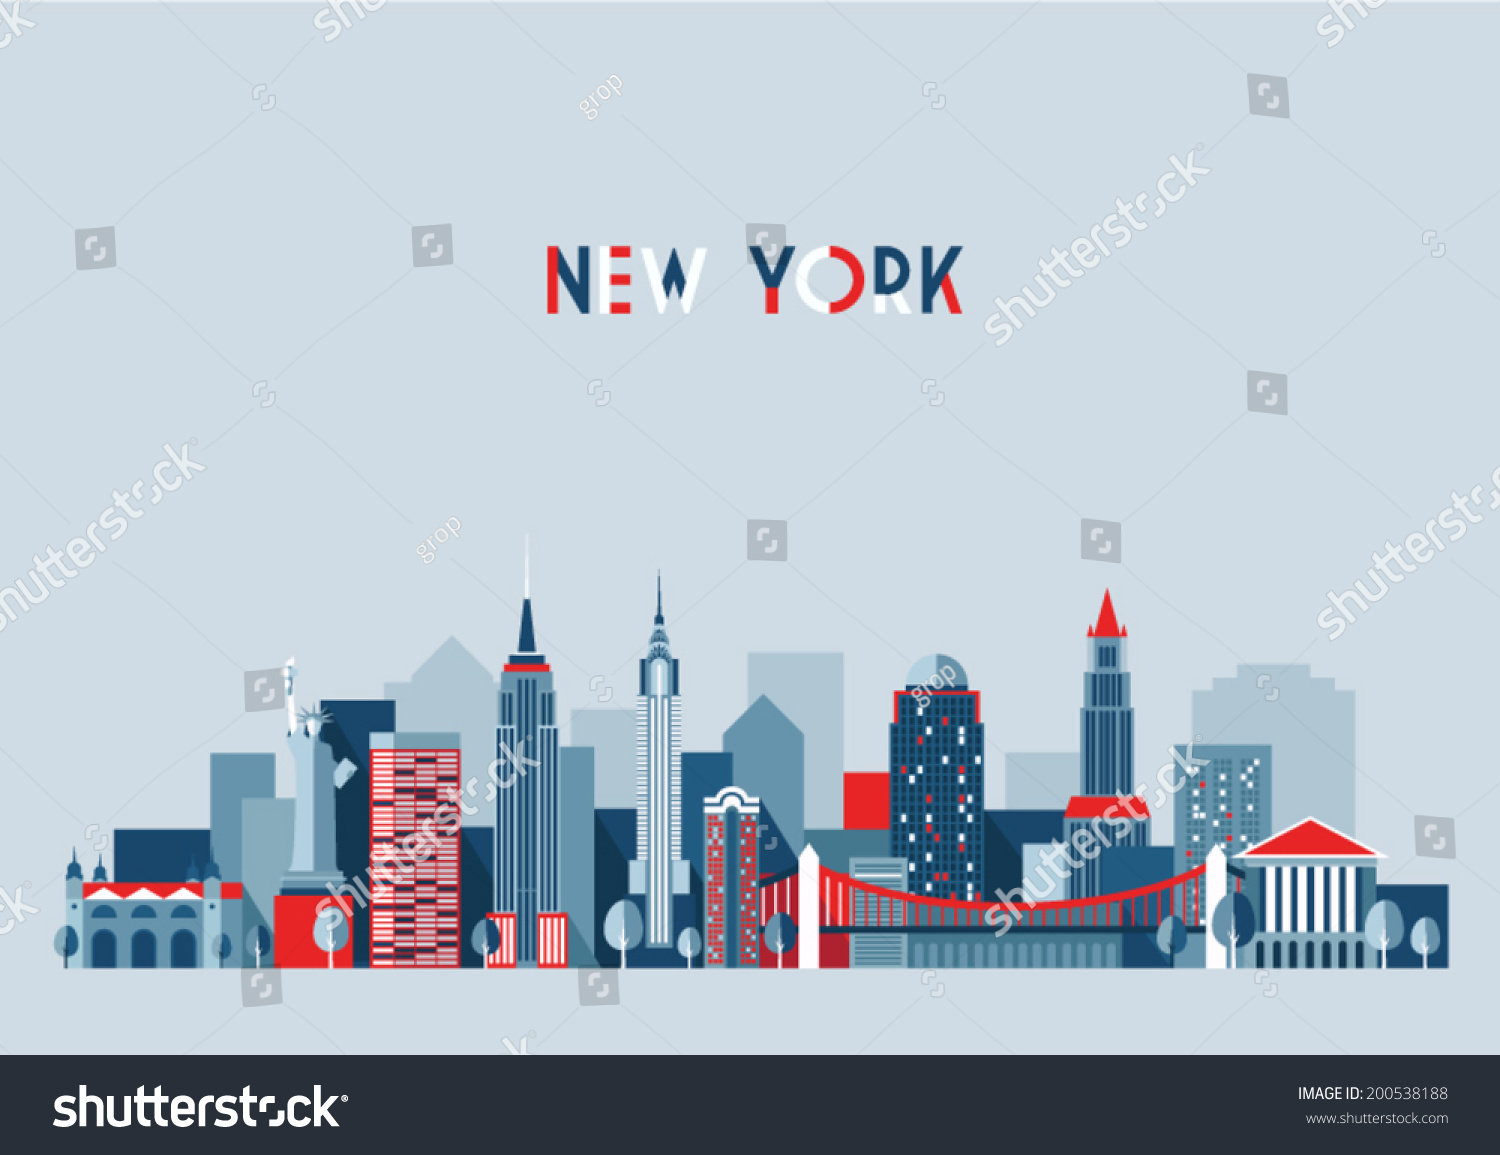 New york city architecture vector illustration skyline for Flat architecture design